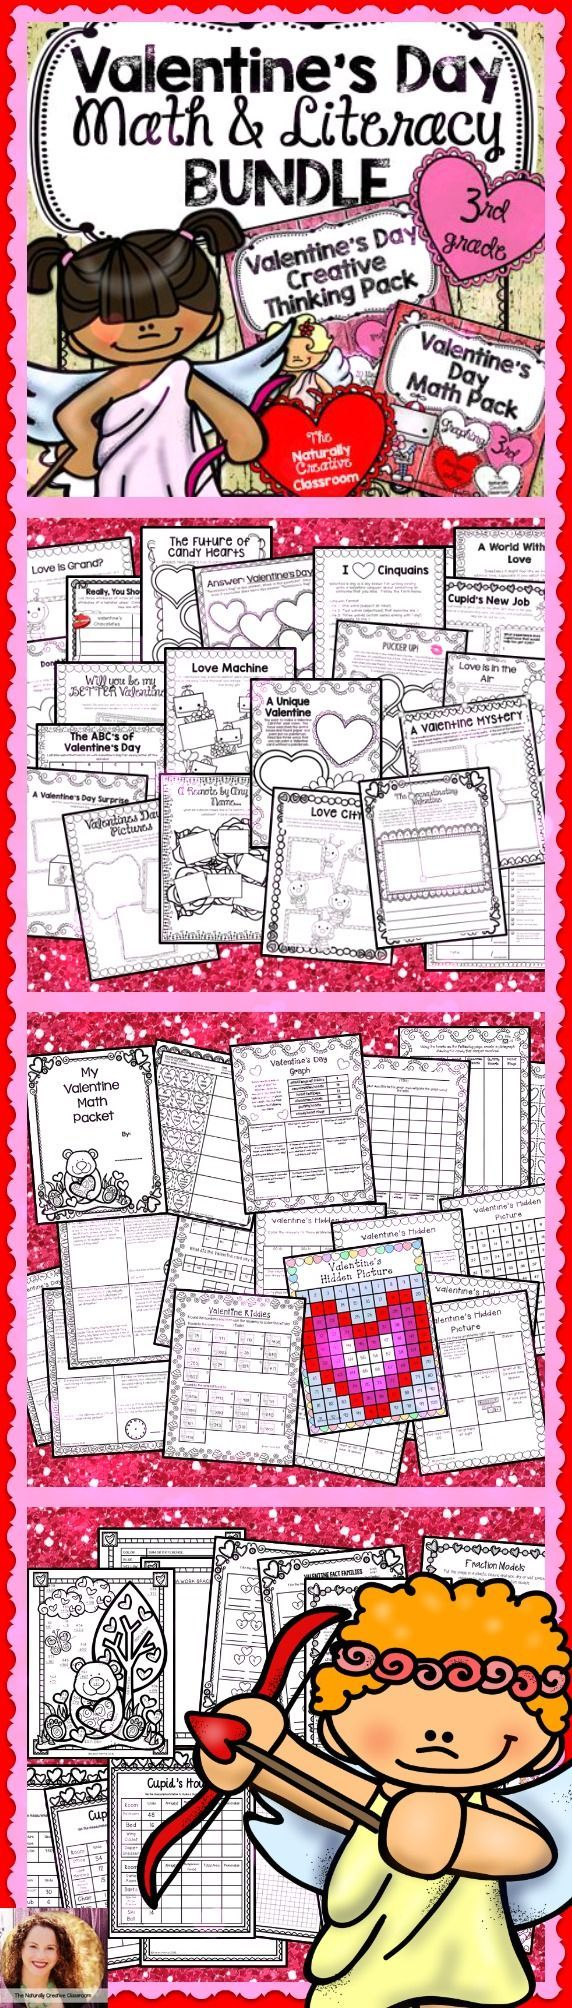 VALENTINE'S DAY MATH & LITERACY BUNDLE!!!  Your 3rd graders will fall in LOVE with these games, puzzles and creative thinking activities!  3rd Grade Common Core Aligned!